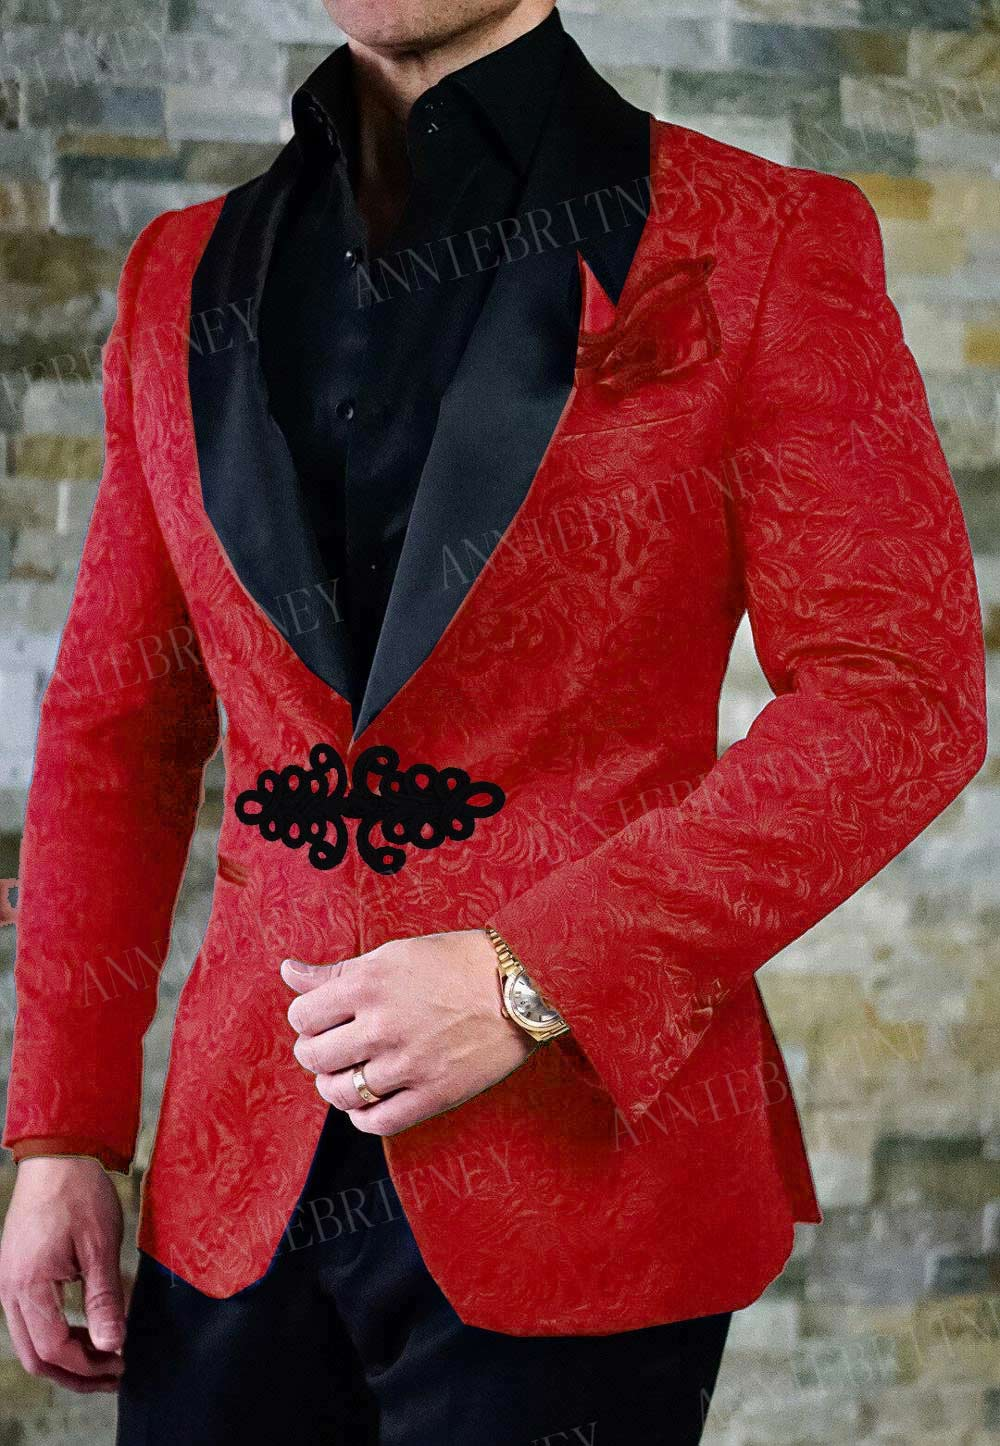 ANNIEBRITNEY 2019 Red Men Suit Custom Slim Fit Tuxedo Groom Suit Set Wedding Prom Blazer With Chinese Knot Buckle Pants 2 Pieces